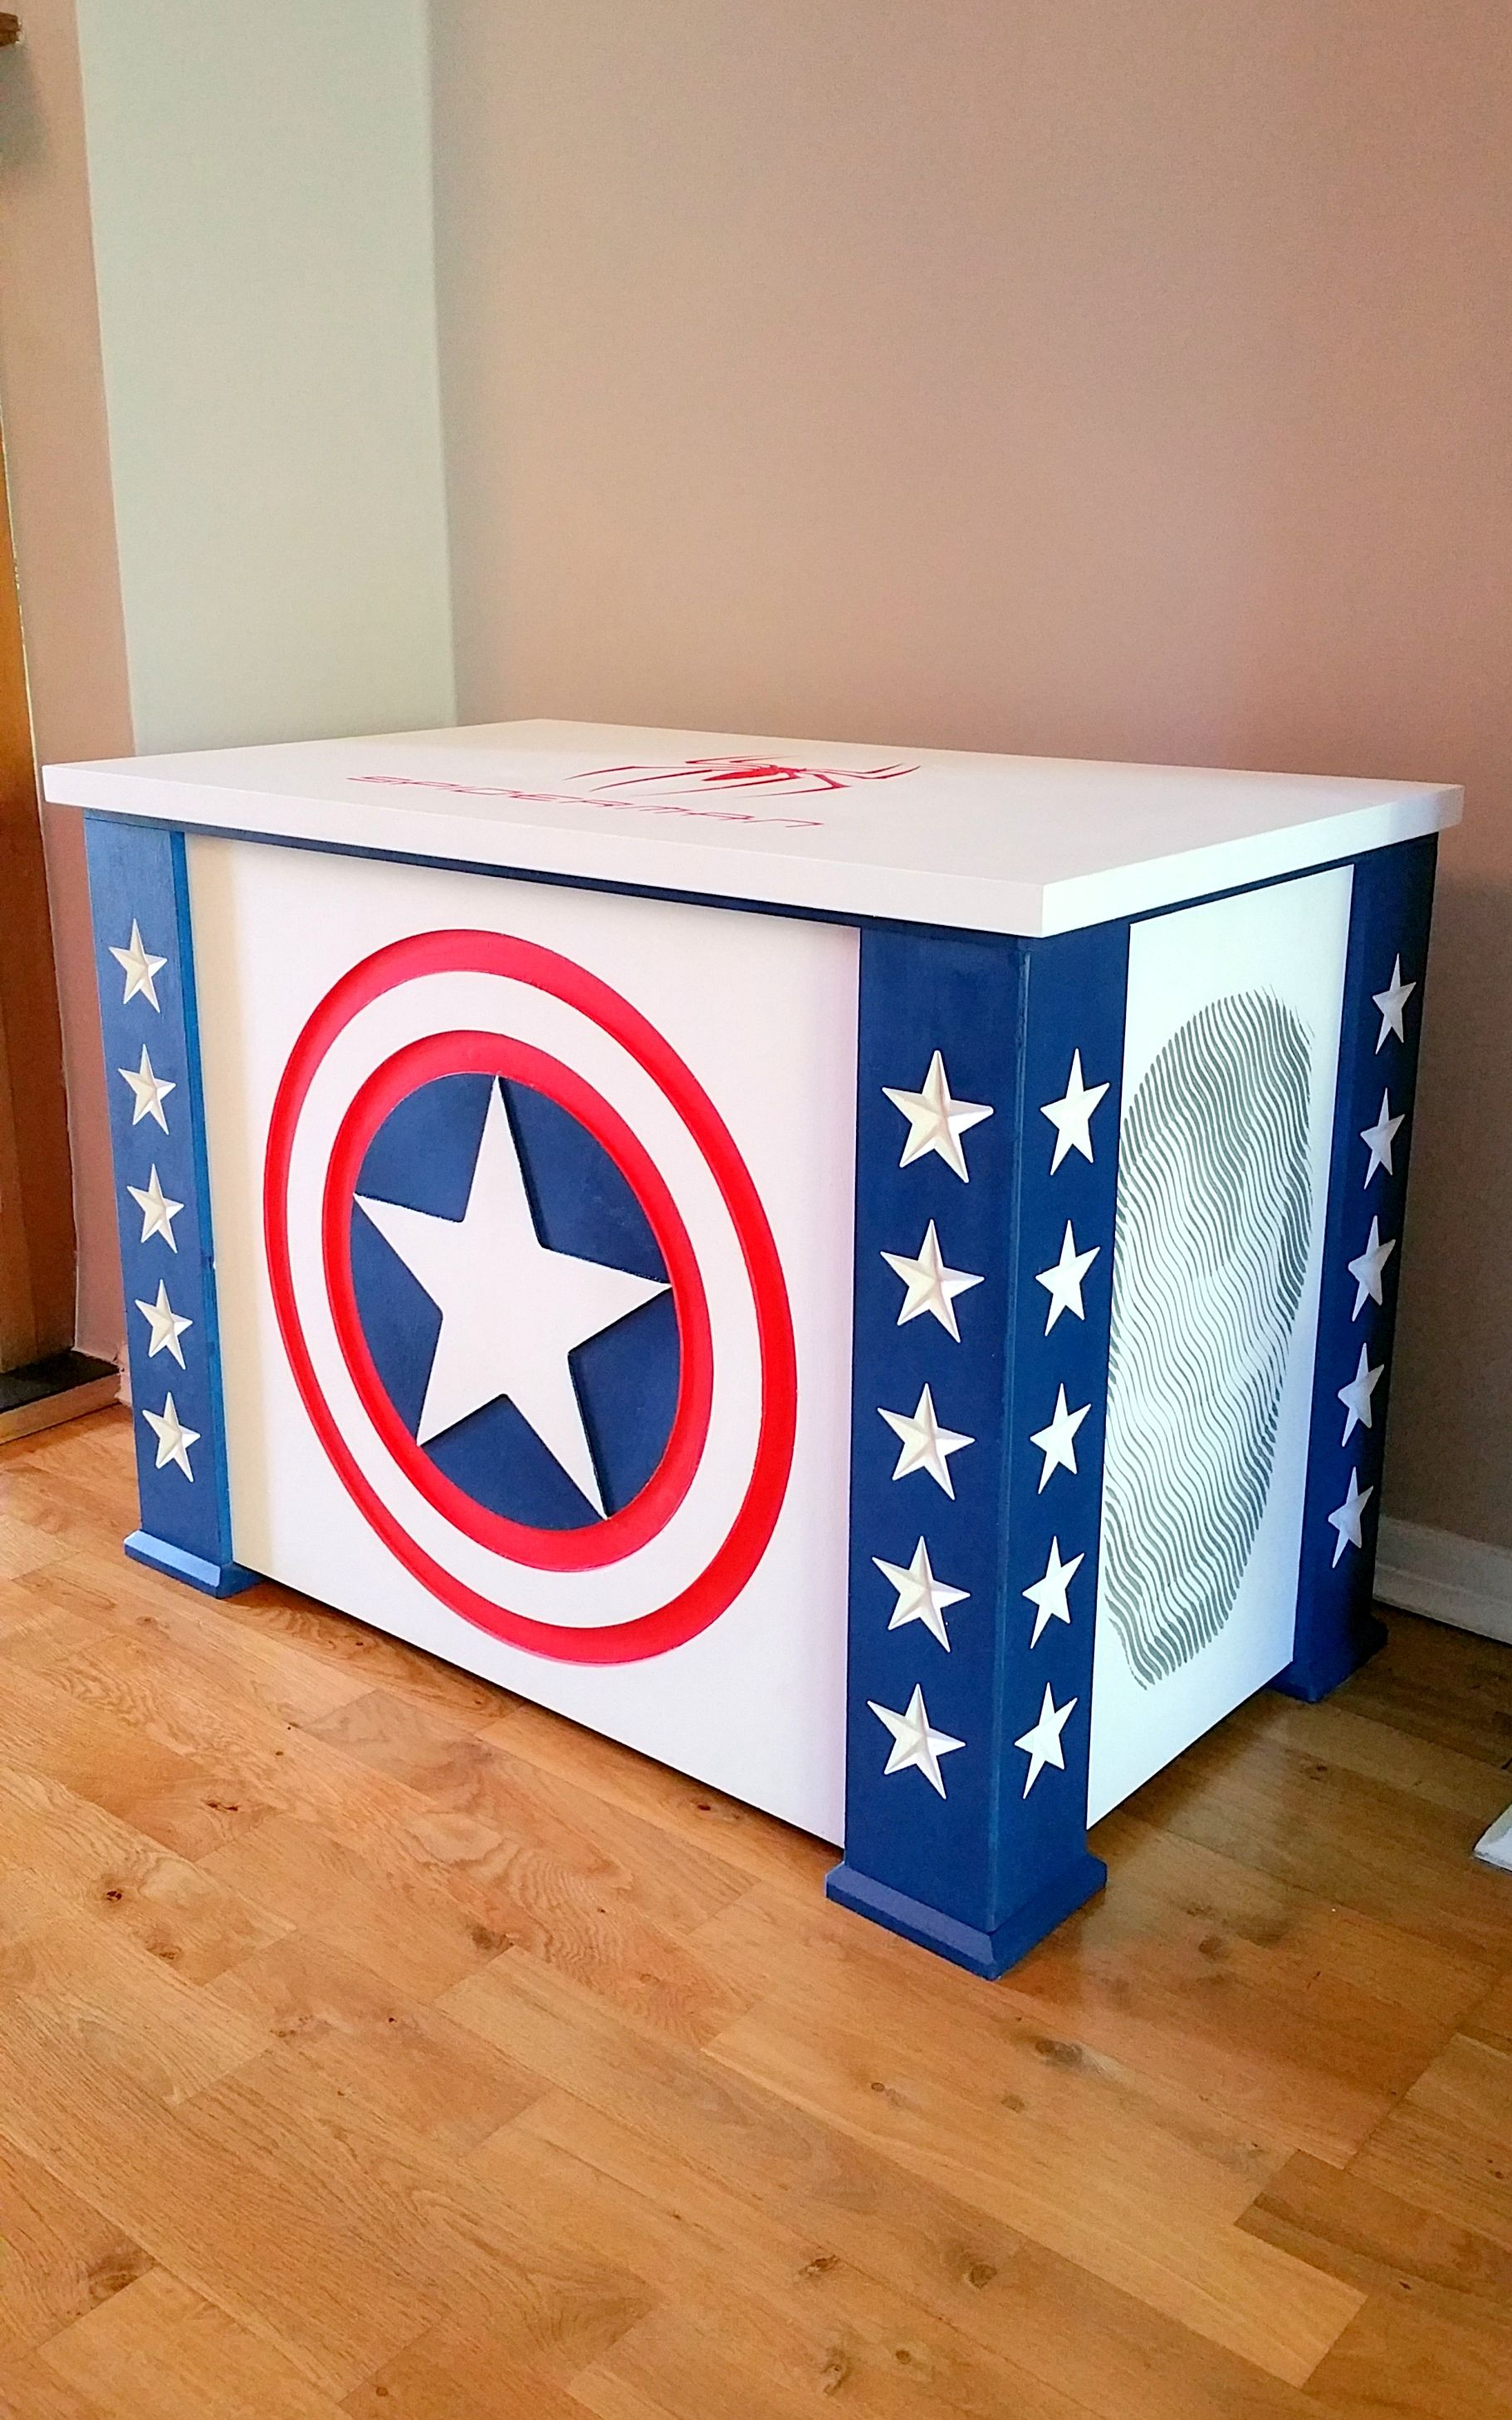 This Toy Box Was Made For A Young Boy Whose Name Is Inscribed Inside The Soft Close Lid He Has Lots Of Toys And Loves Captain America Other Marvel